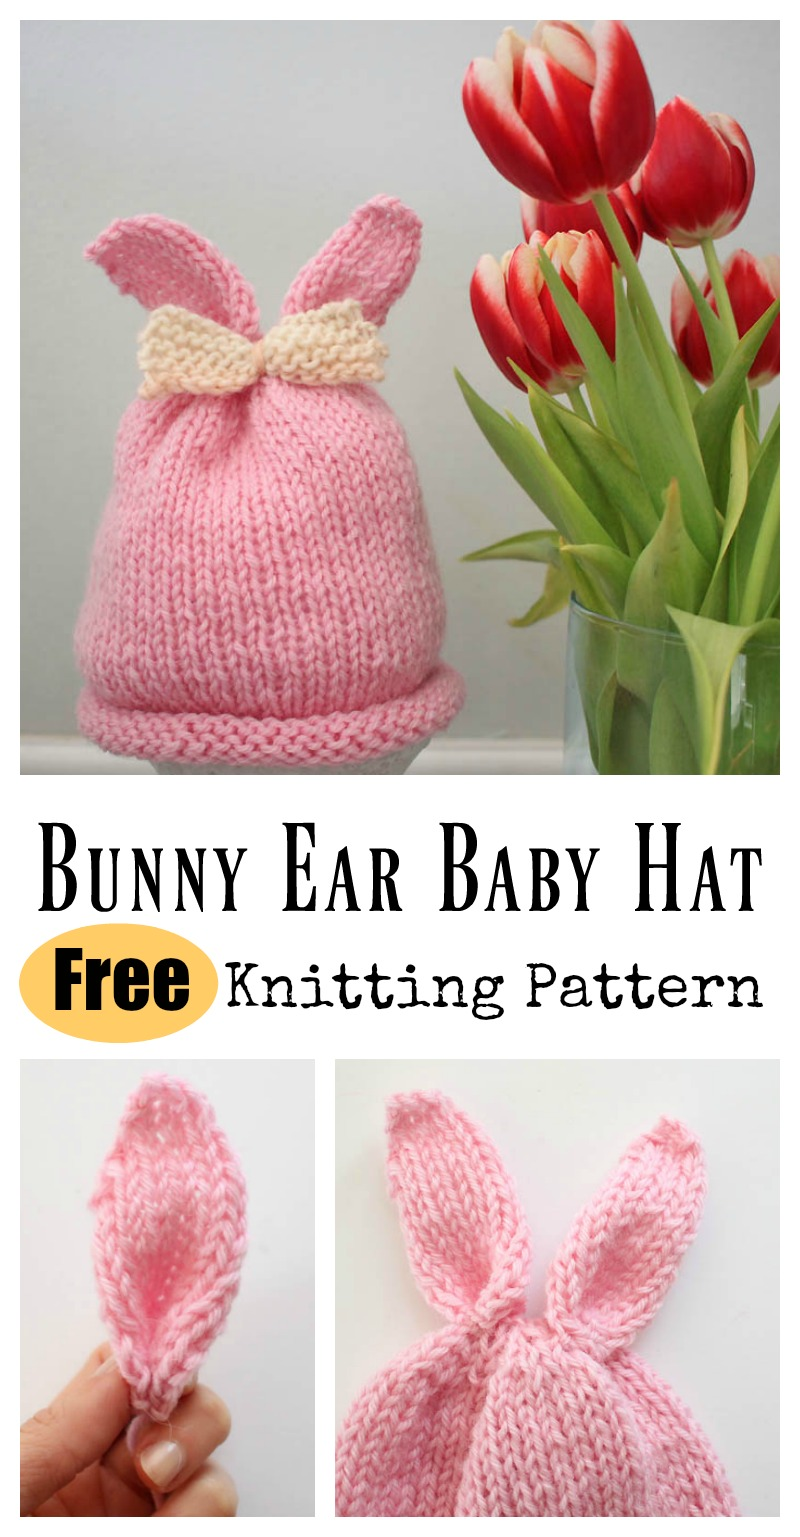 Bunny Ear Baby Hat Free Knitting Pattern